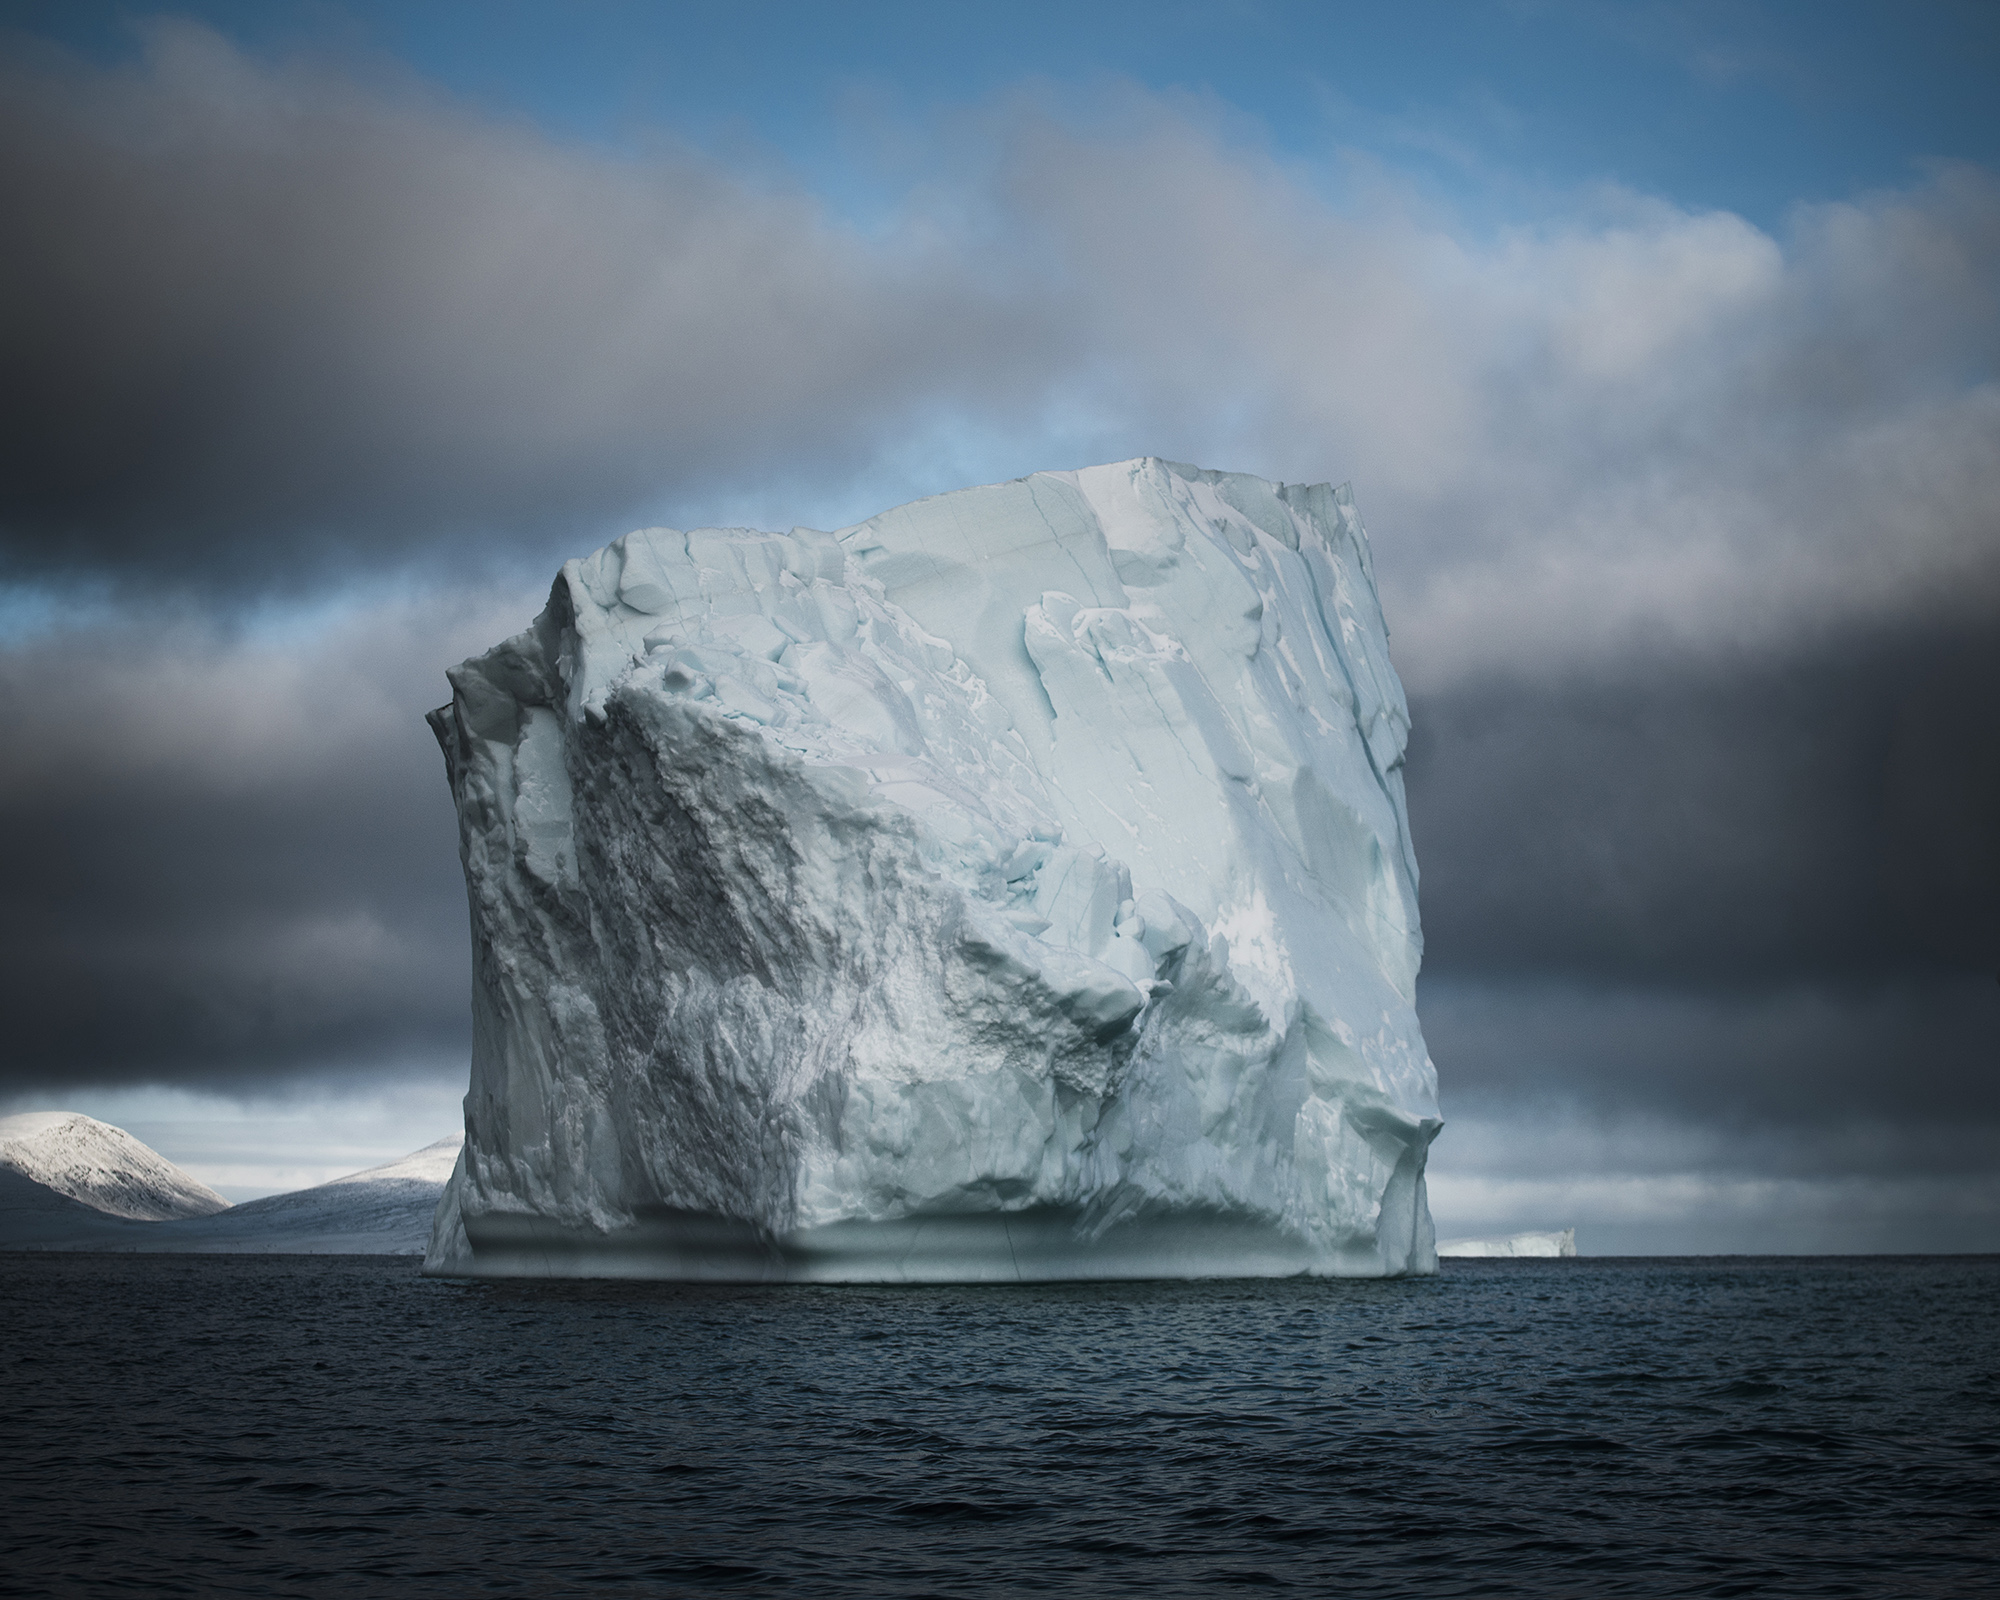 The Arctic is warming twice as fast at the rest of the world. Locals say that sea ice used to form in September in Clyde River. Now, it doesn't form until late October, or even November. The warming of the sea in the Arctic, opens up the Northwest Passage for several months a year, meaning that traffic in the area will increase, which effects marine life and Inuit hunting traditions. (Camilla Andersen/GroundTruth)